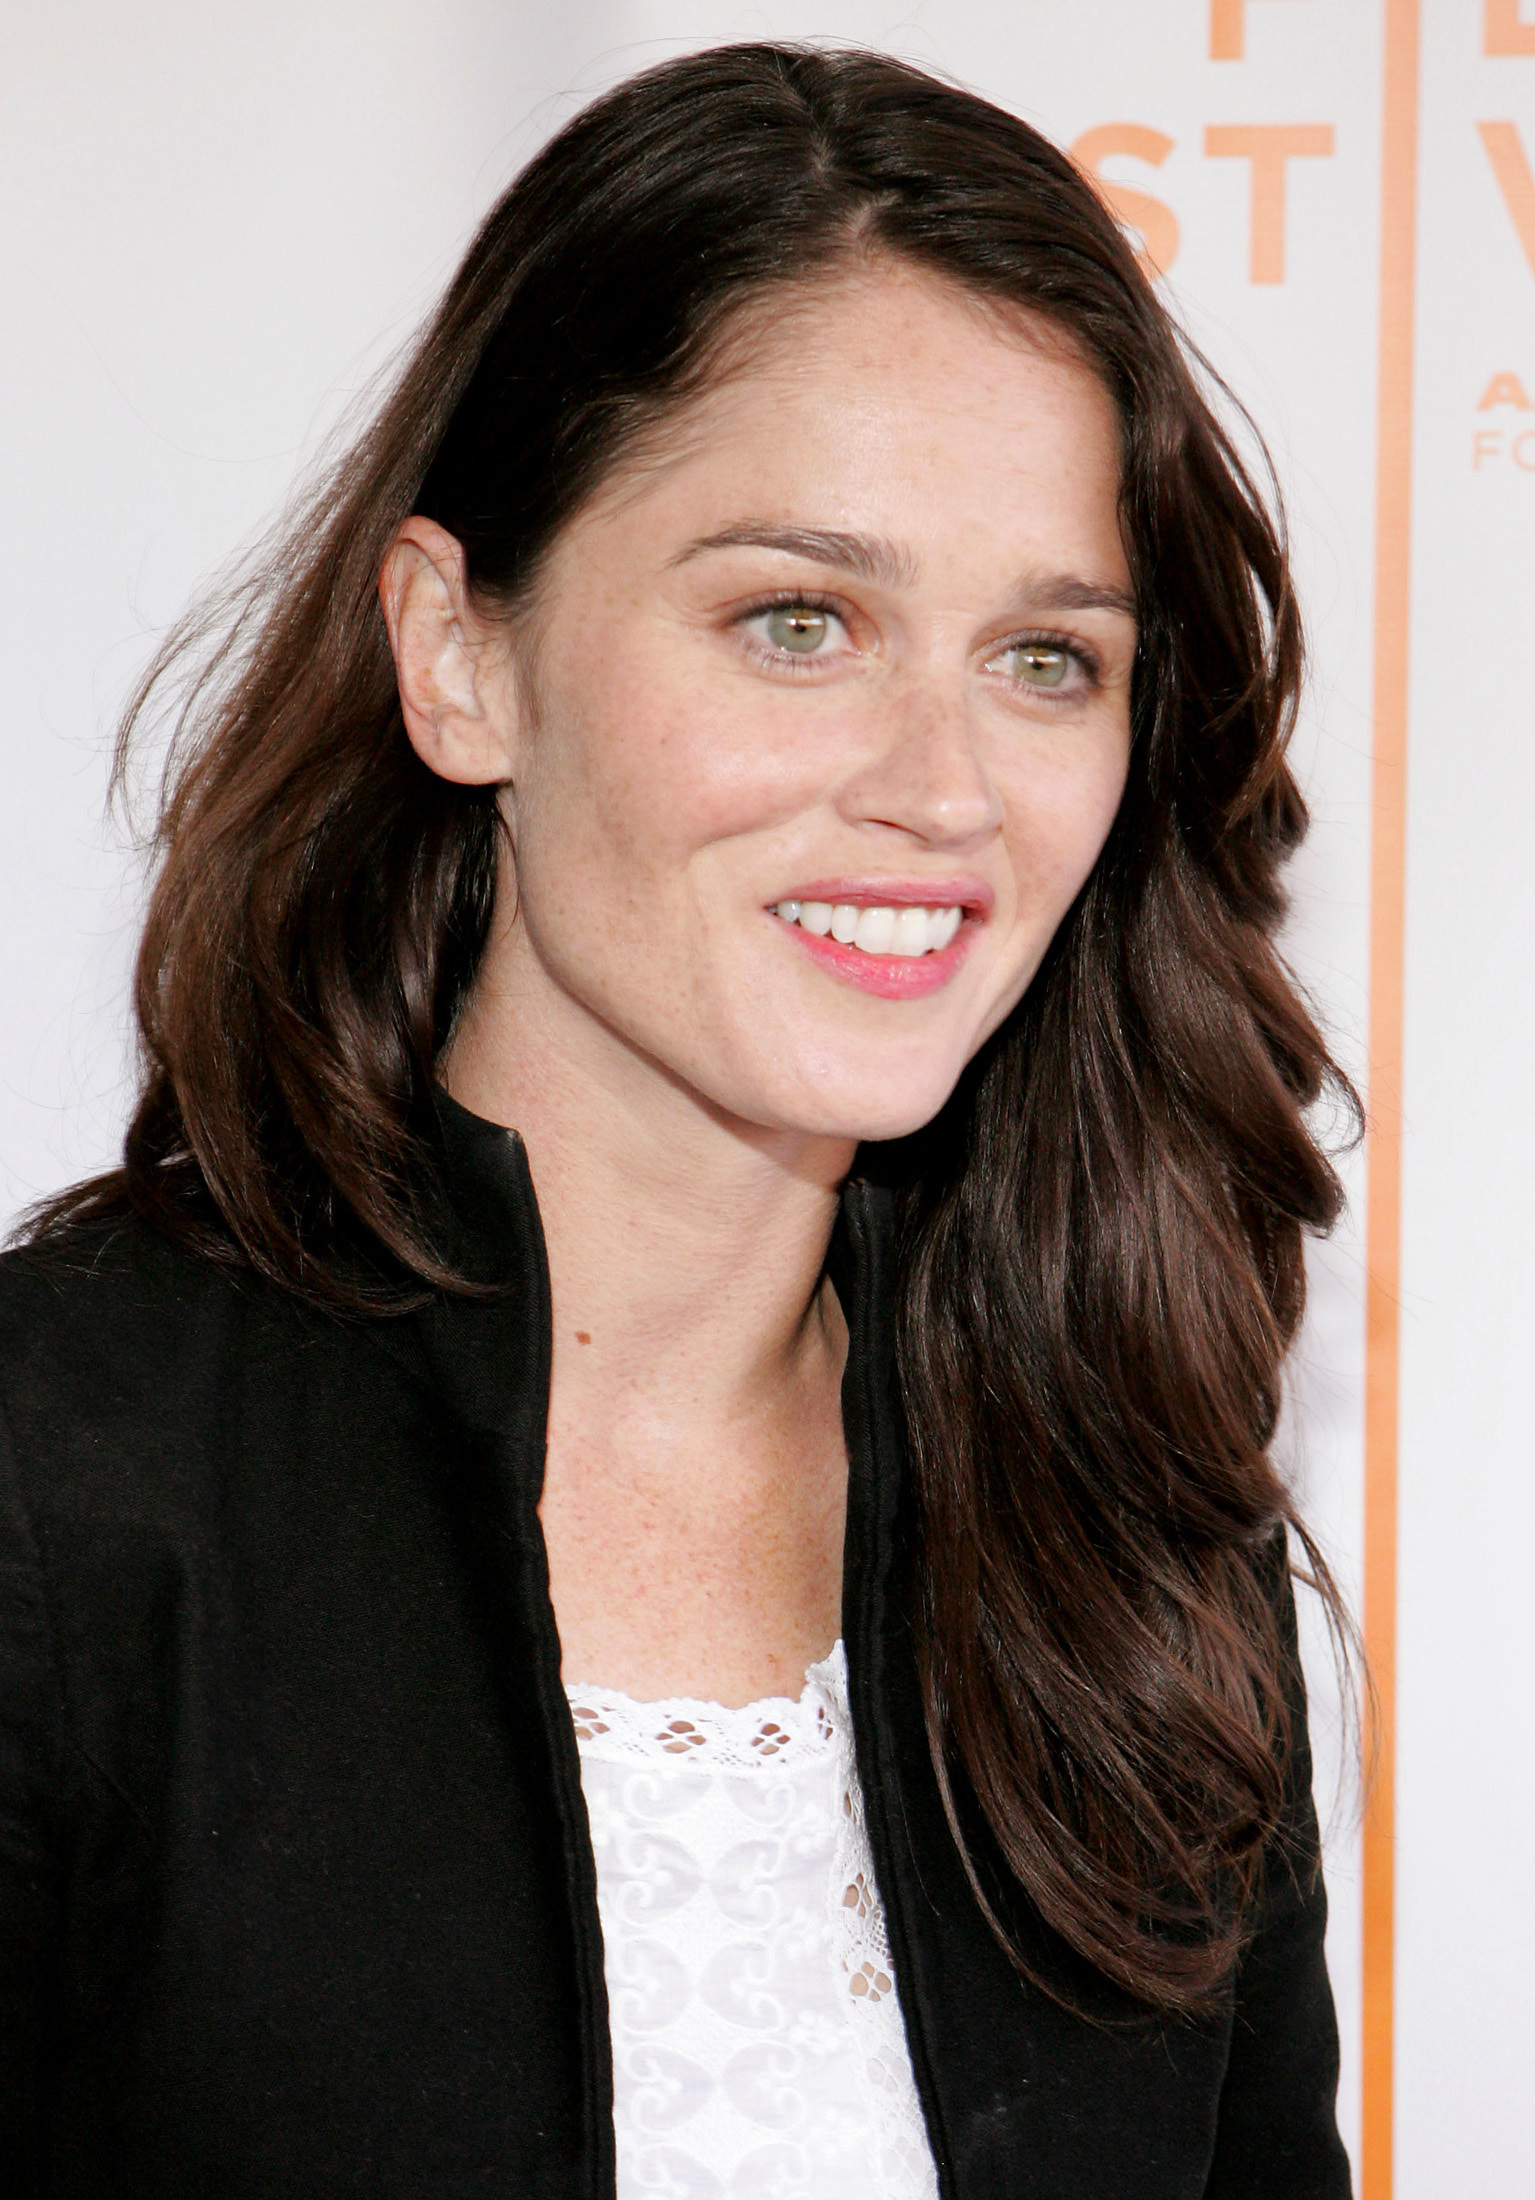 Robin Tunney-The Mentalist | Film & Tv | Pinterest |Robin Tunney The Mentalist